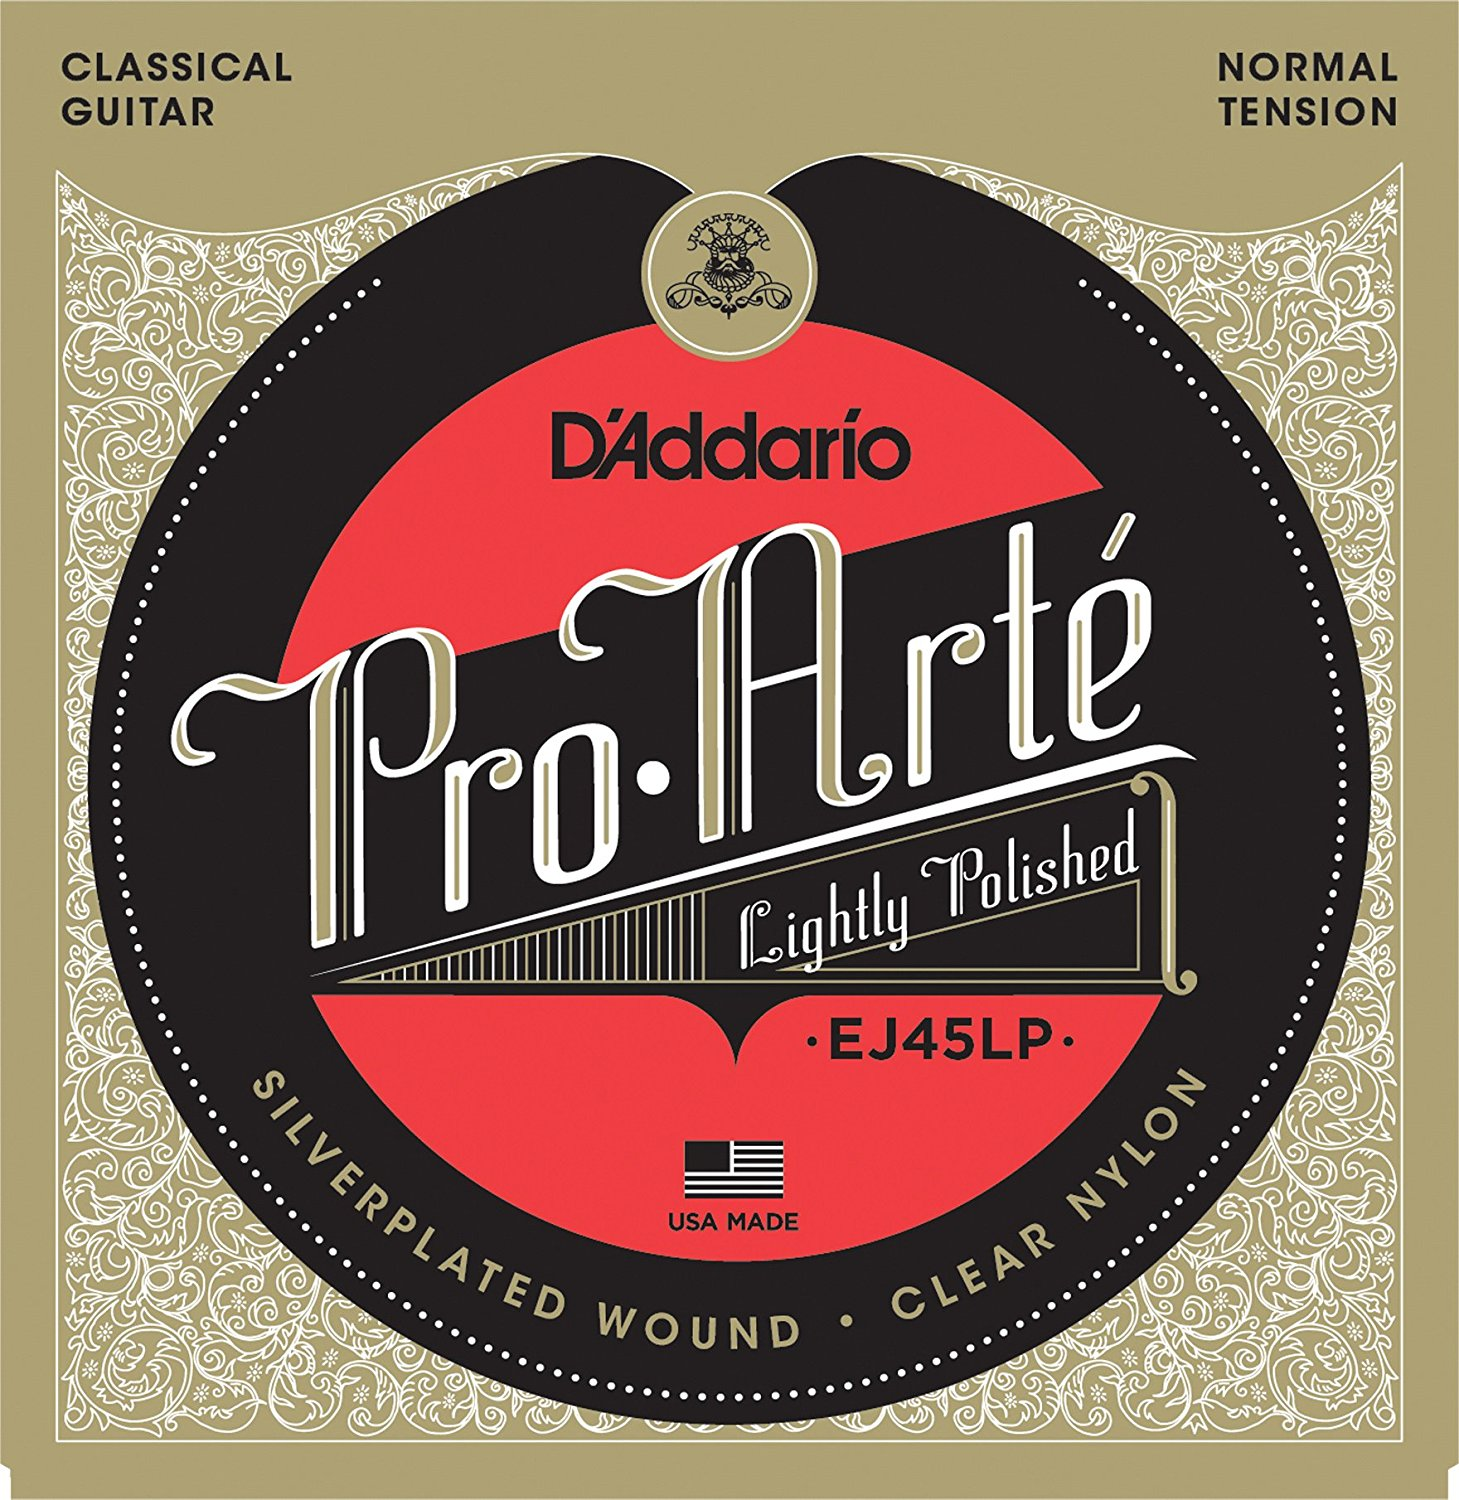 D'Addario EJ45LP Pro-Arte Composite Classical Guitar Strings, Normal Tension savarez 510 cantiga series alliance cantiga ht classical guitar strings full set 510aj